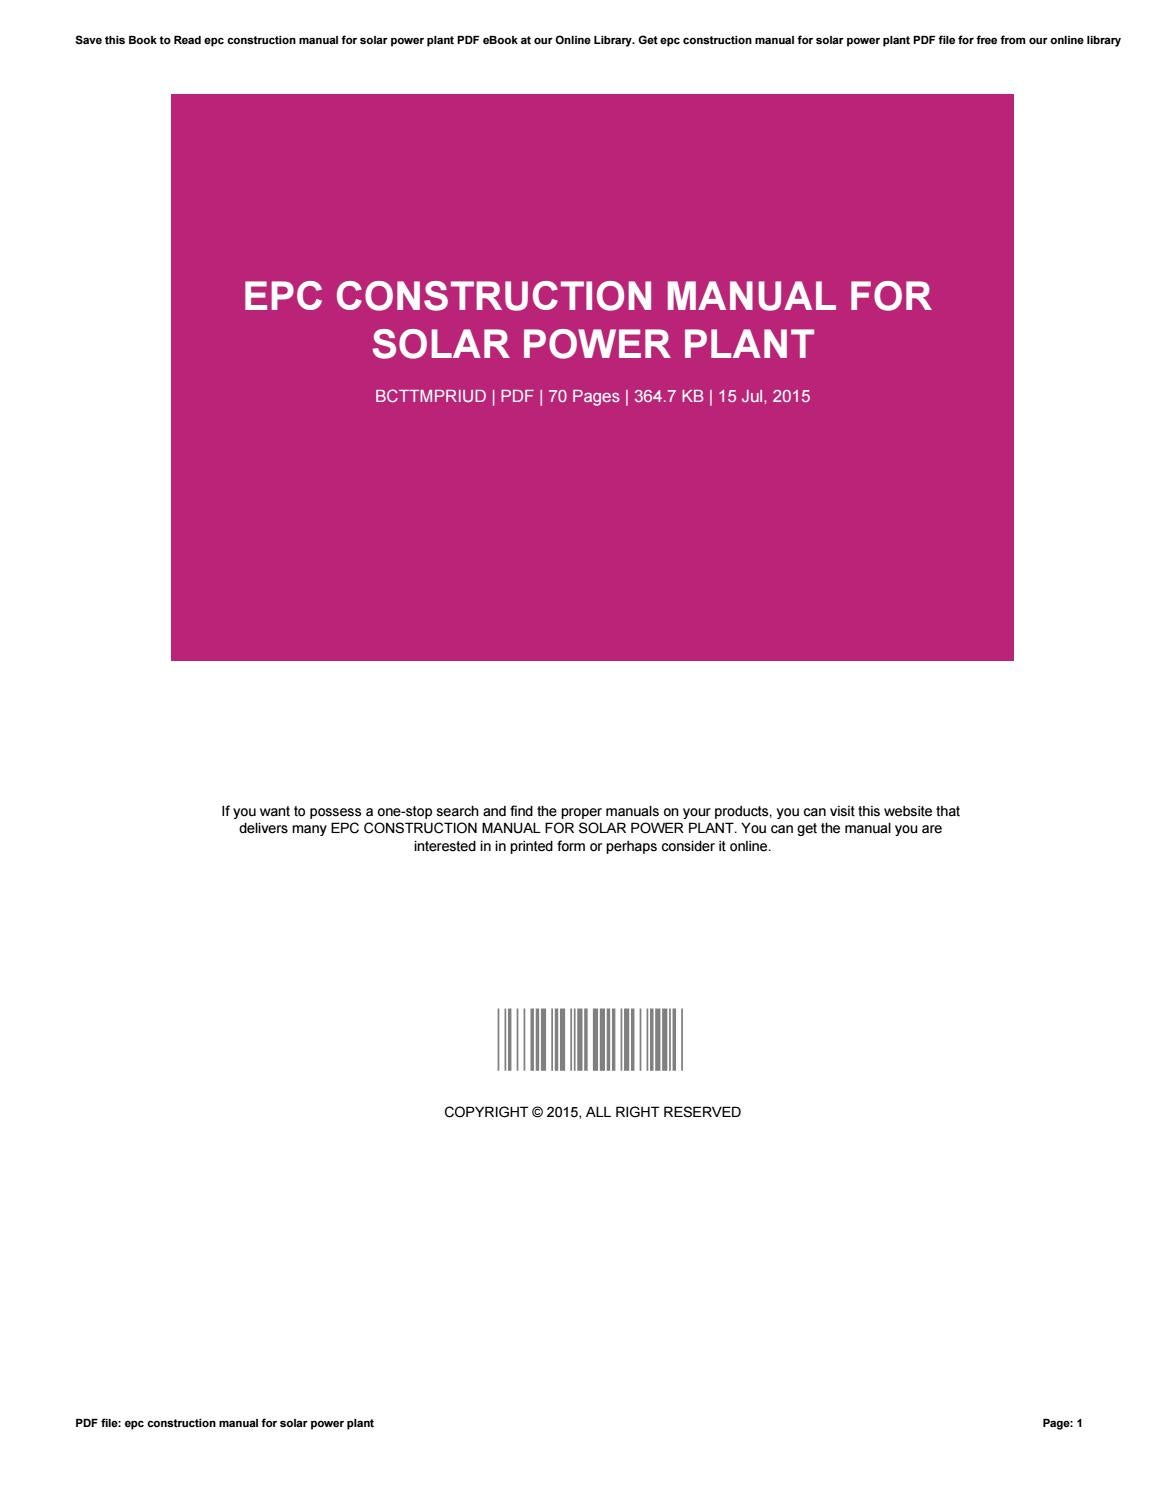 Epc construction manual for solar power plant by